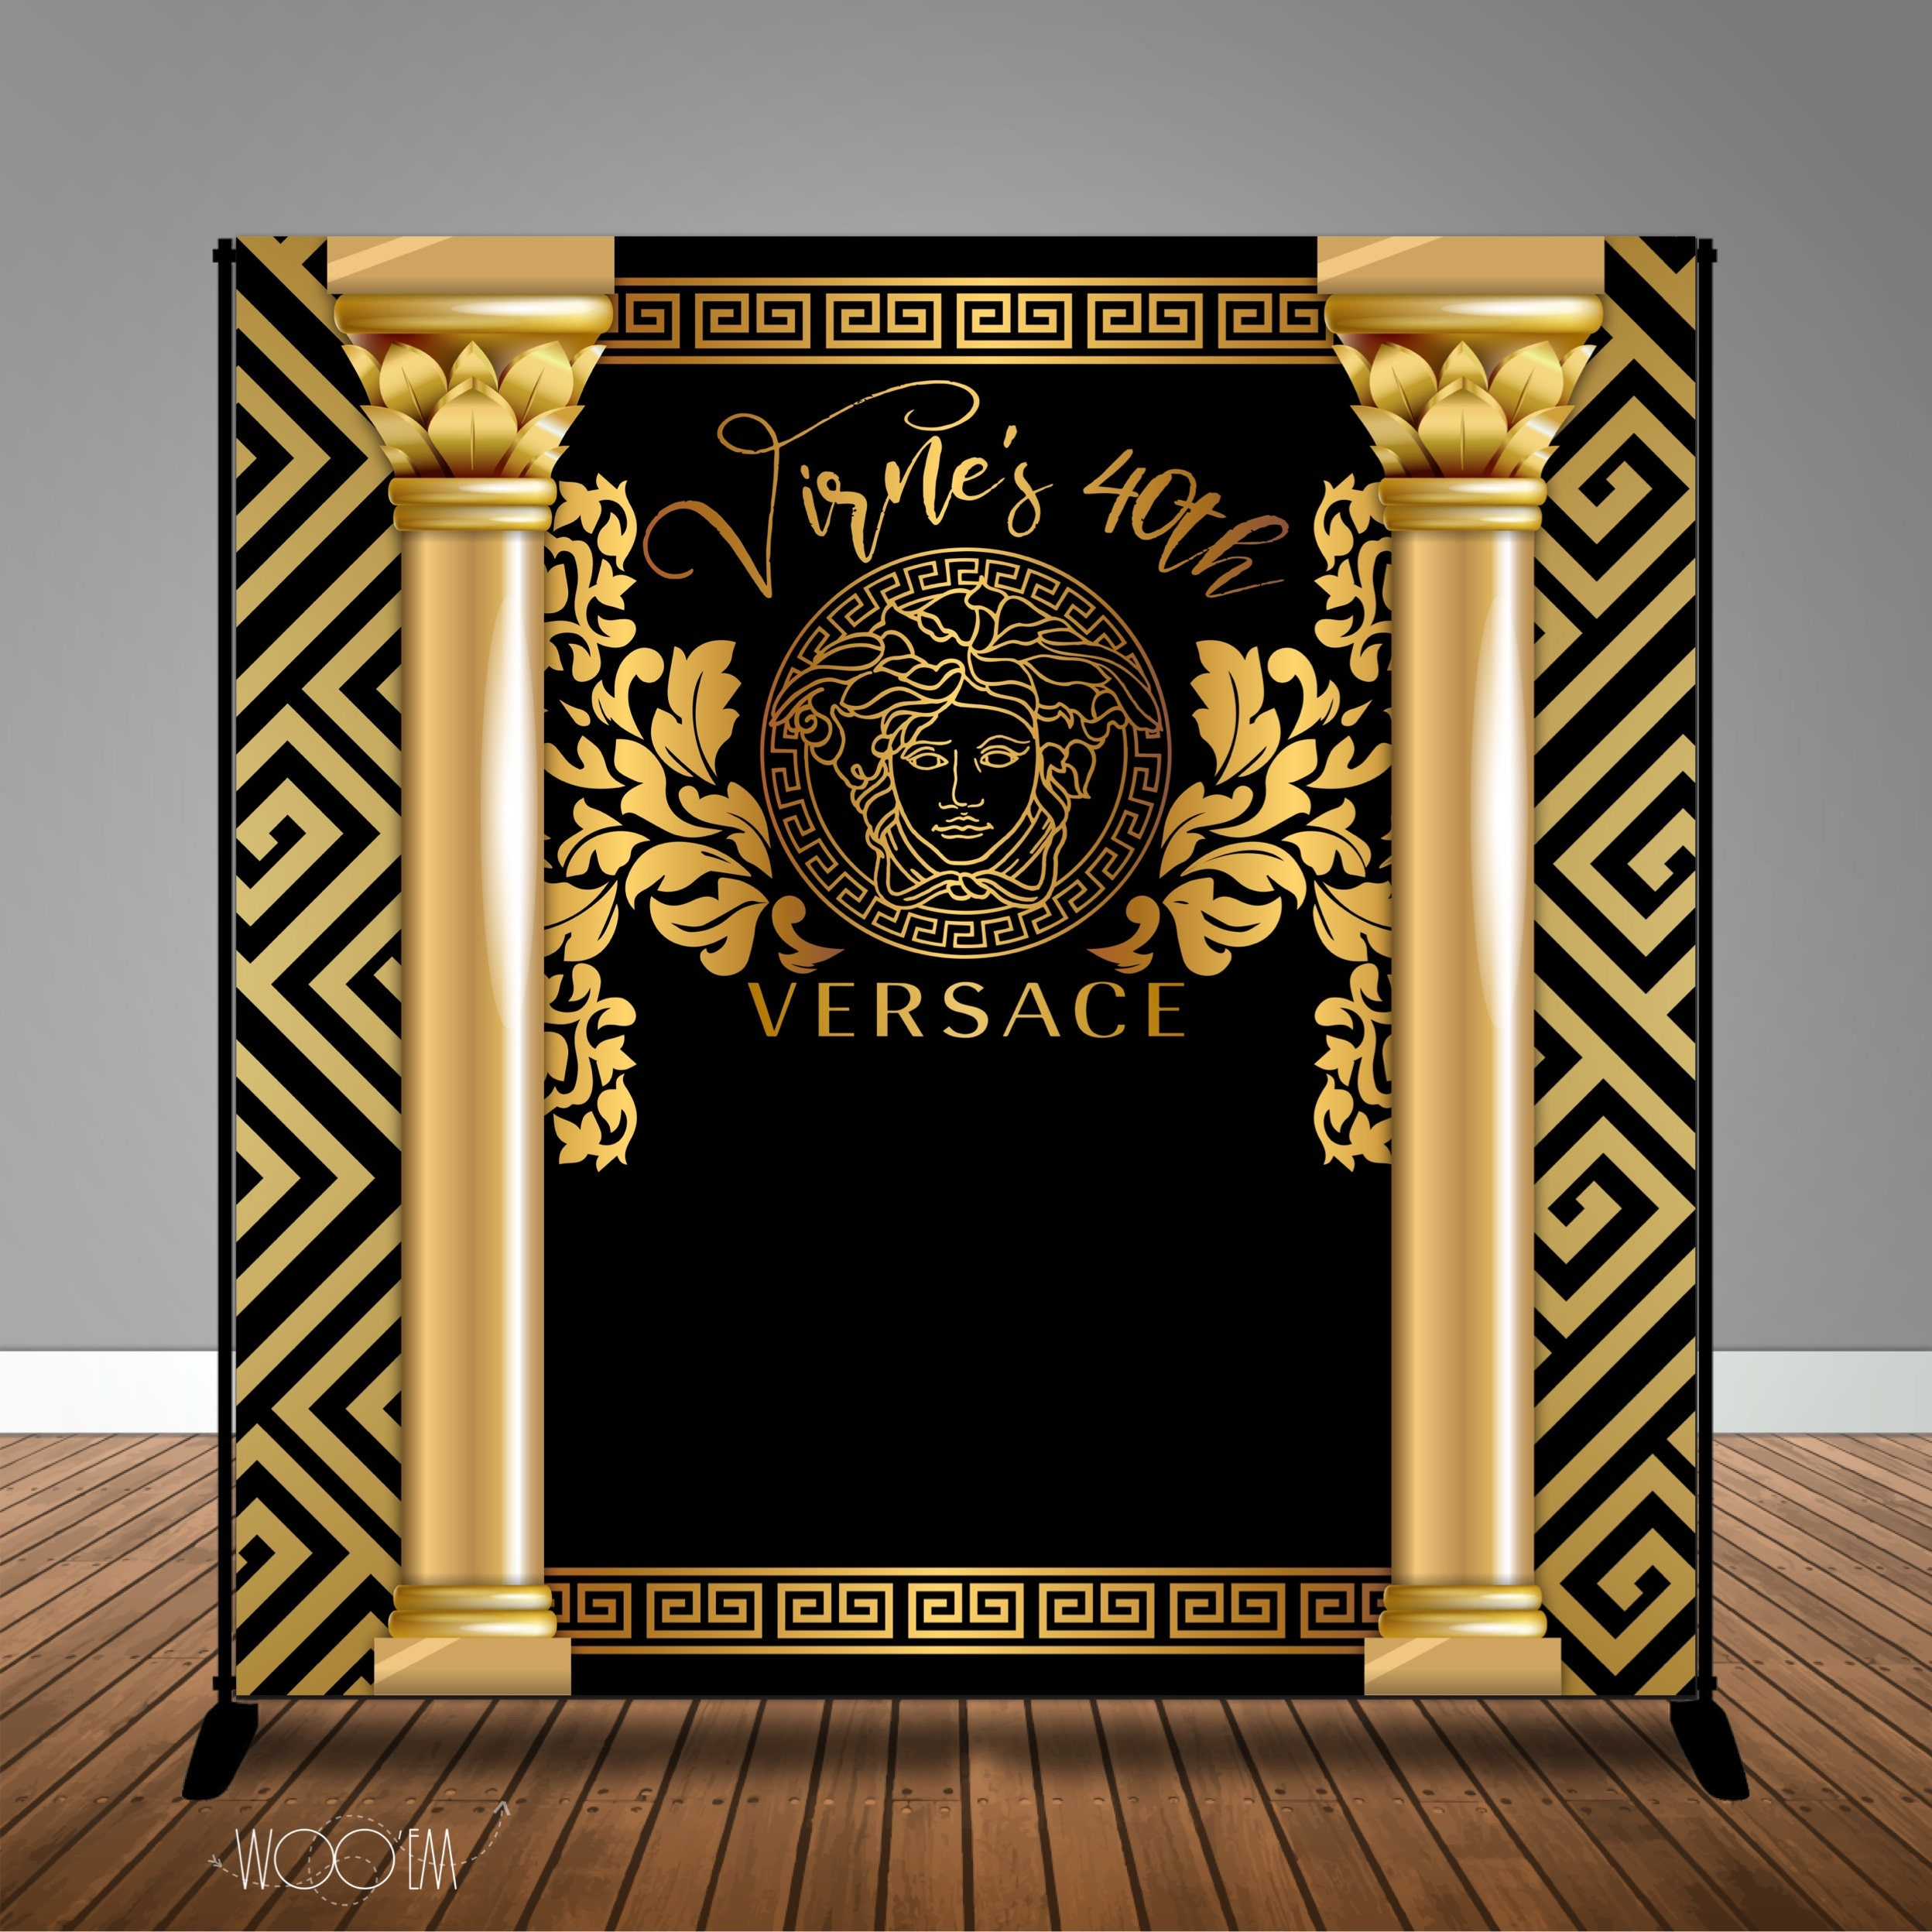 Versace Themed Birthday 8x8 Banner Backdrop Step amp Repeat